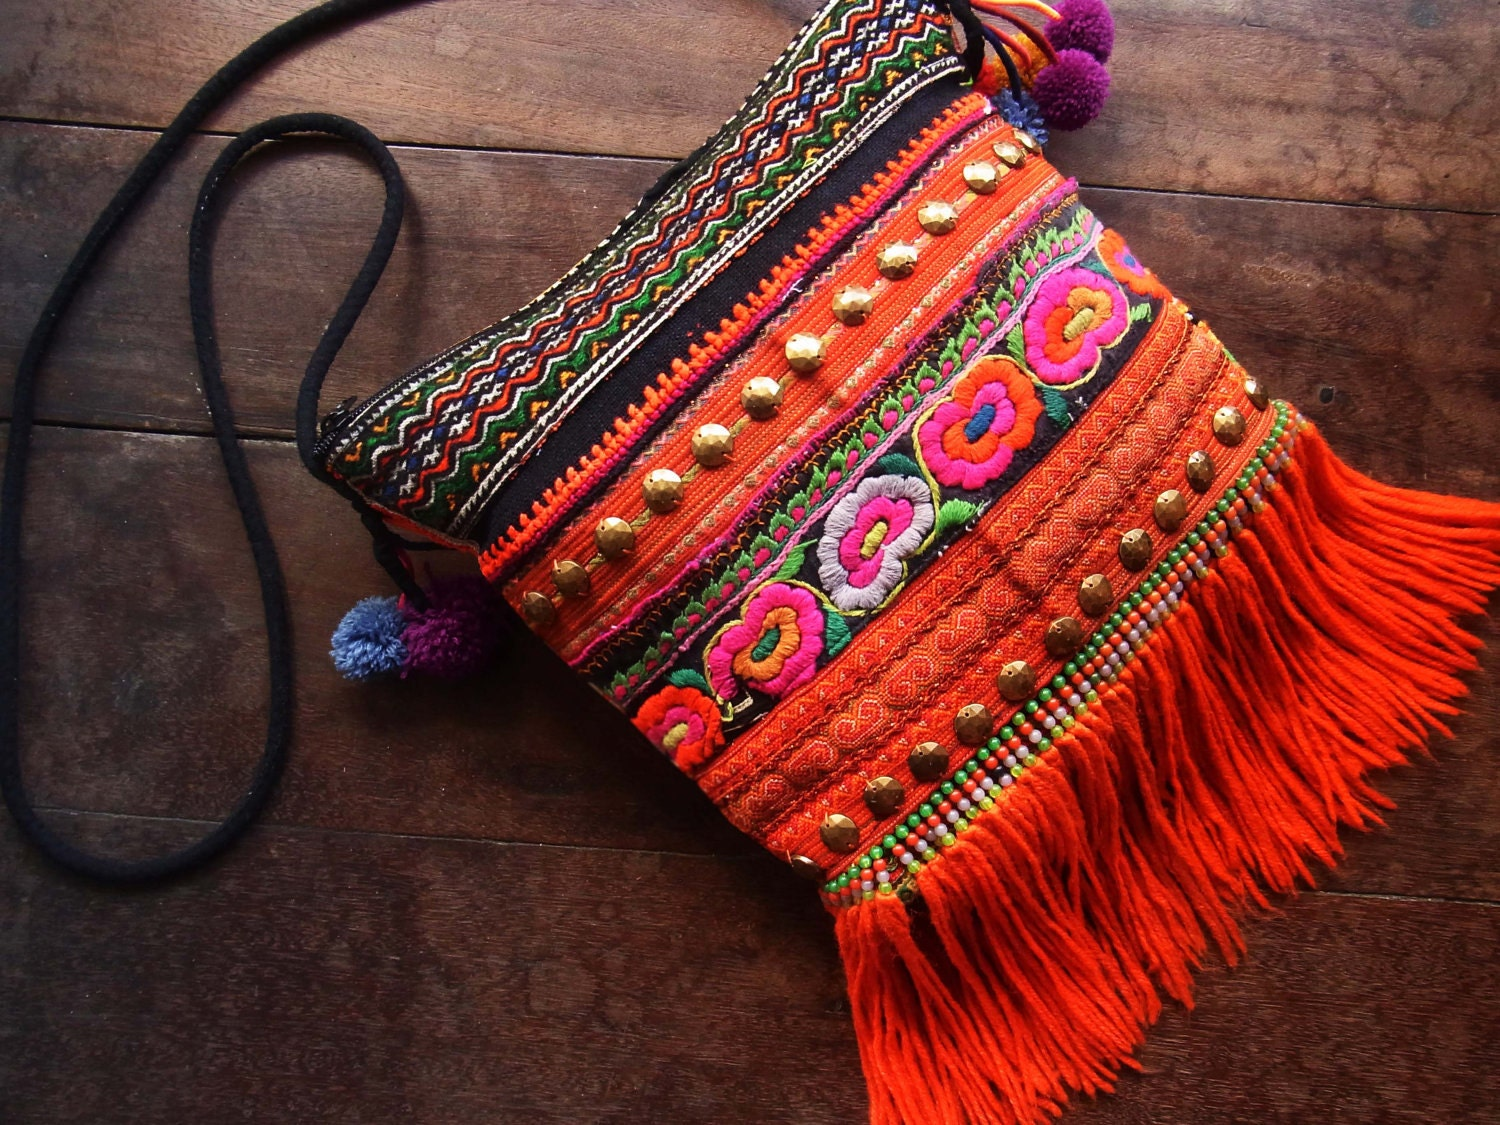 Bohemian fringe purse woman // hippie // tribal // colorful // ethnic // embroidery // cross body // flower // scarlet red // pouch - realmlistic